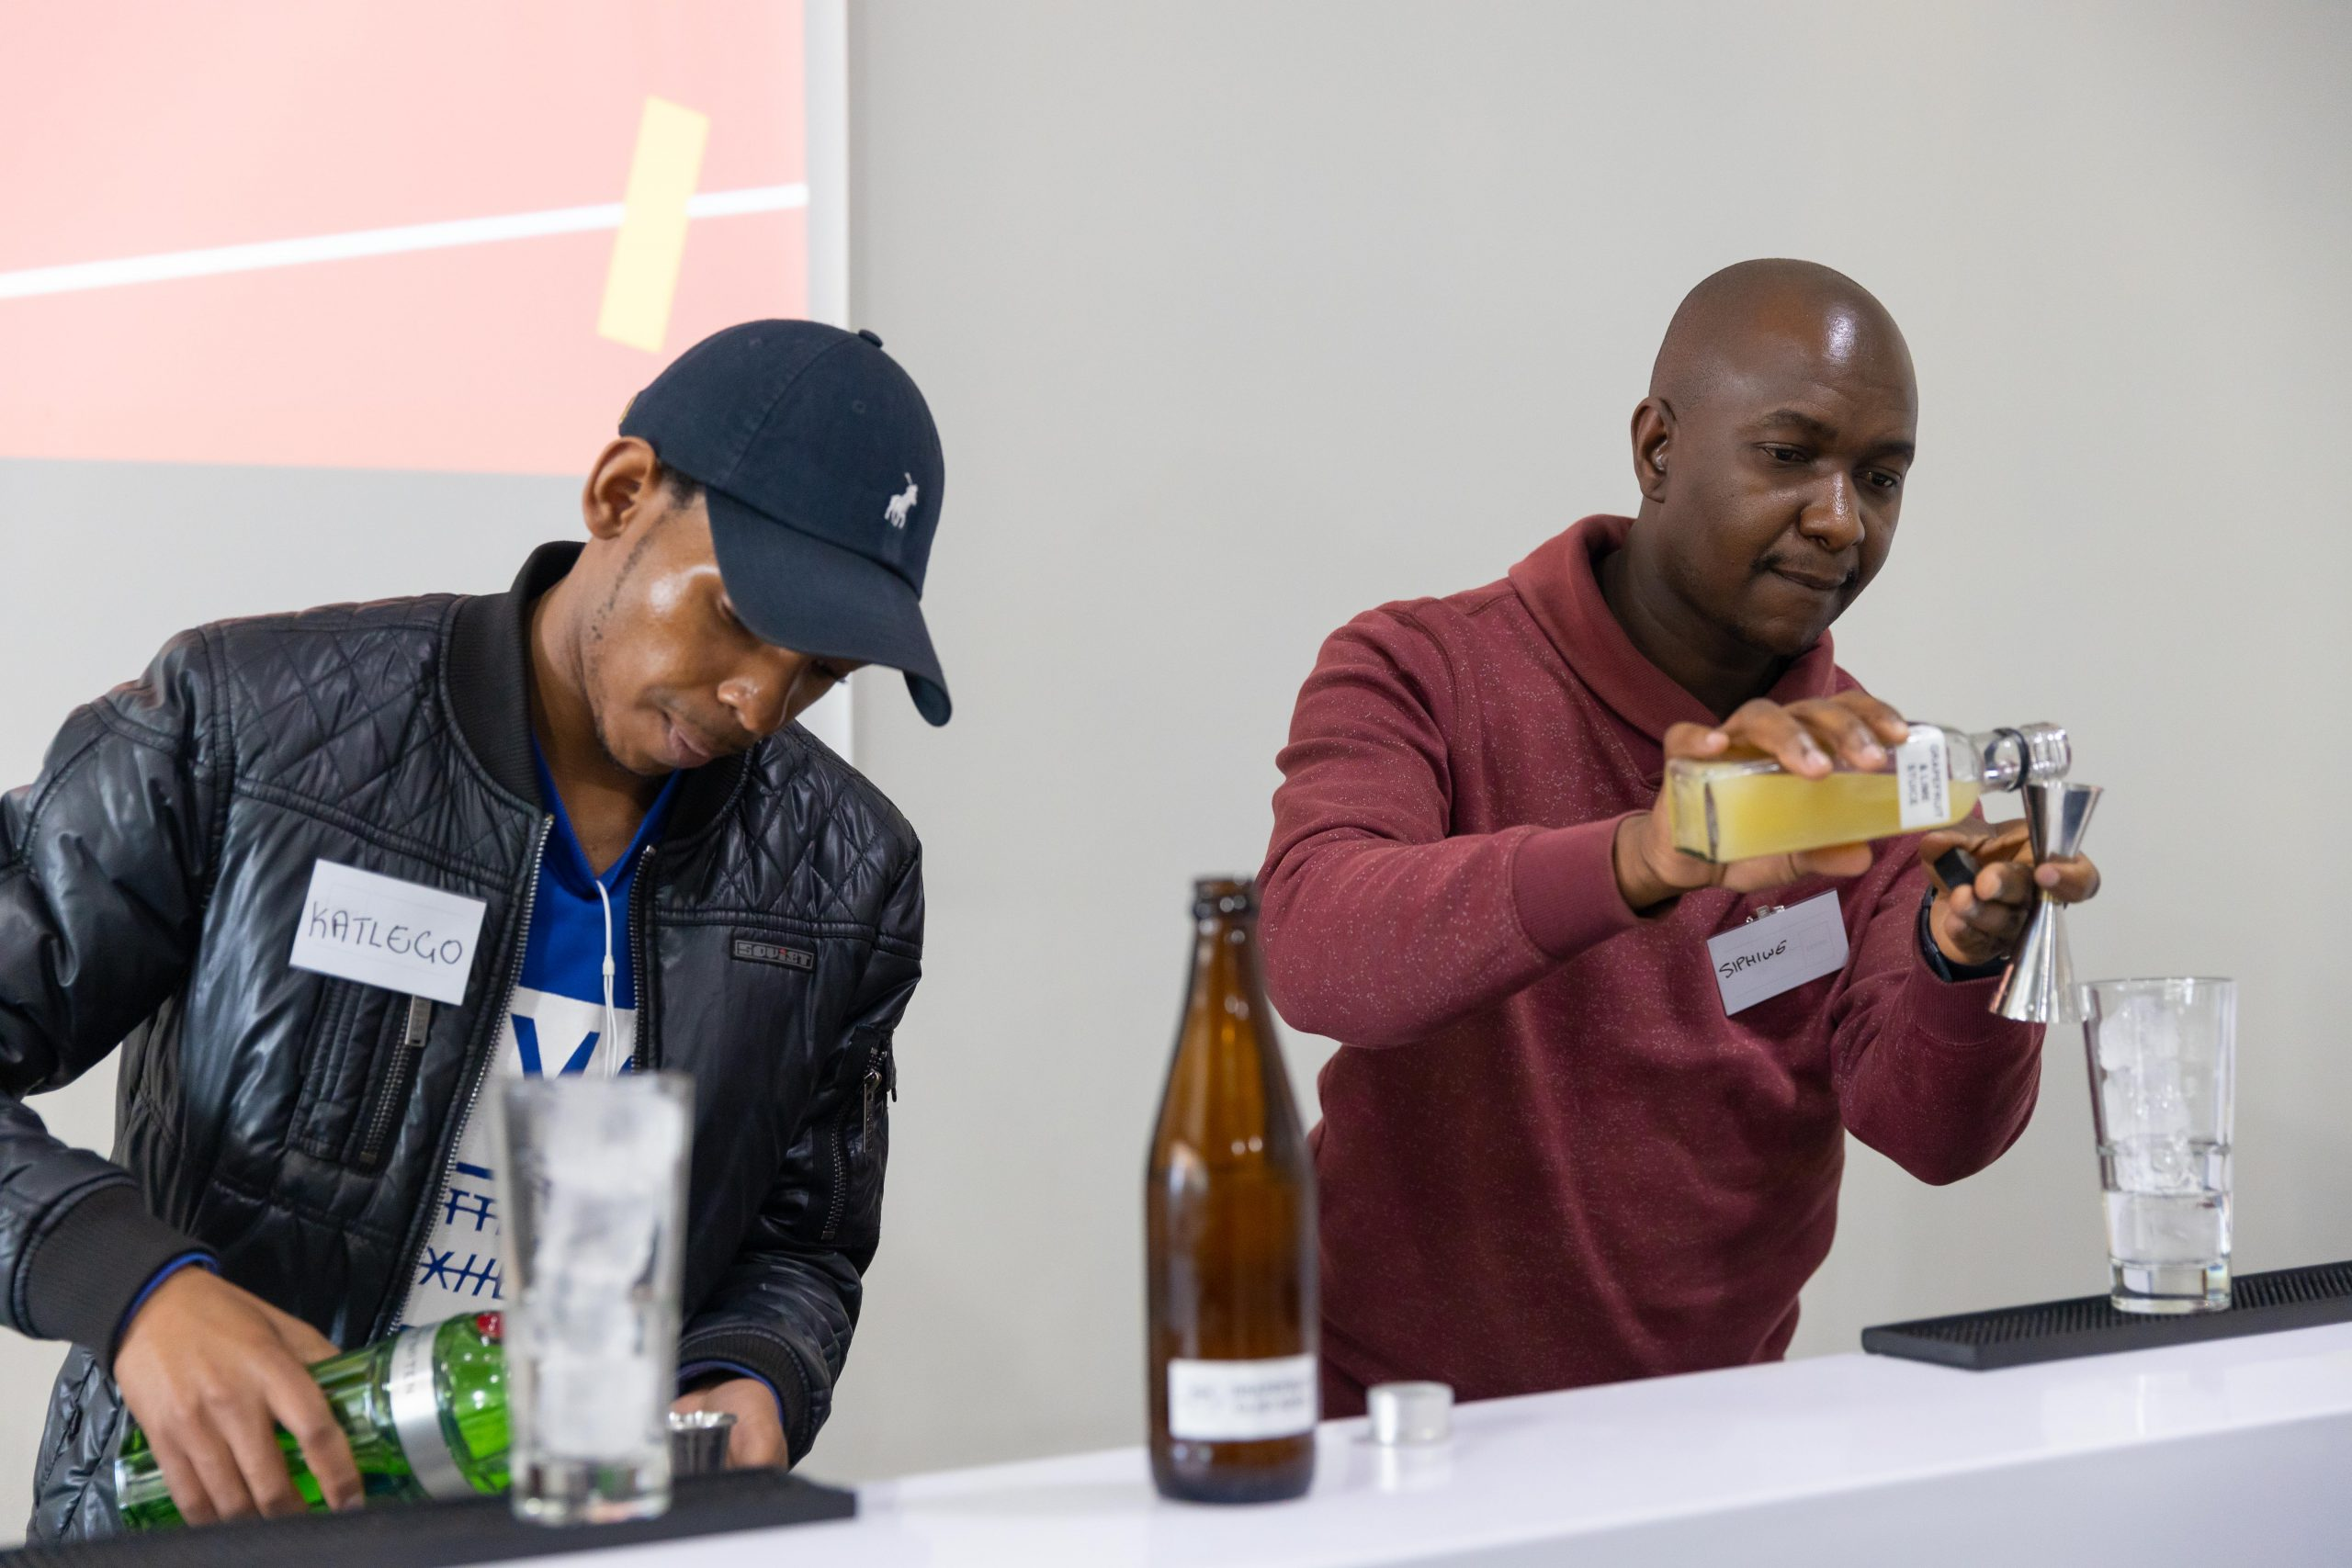 Diageo SA - Katlego Tlhatlhedi, from Roodepoort & Siphiwe Ngcobo, from Ekurhuleni, two mentees at the first Mentorship Training session in JHB showcasing their bartending skills